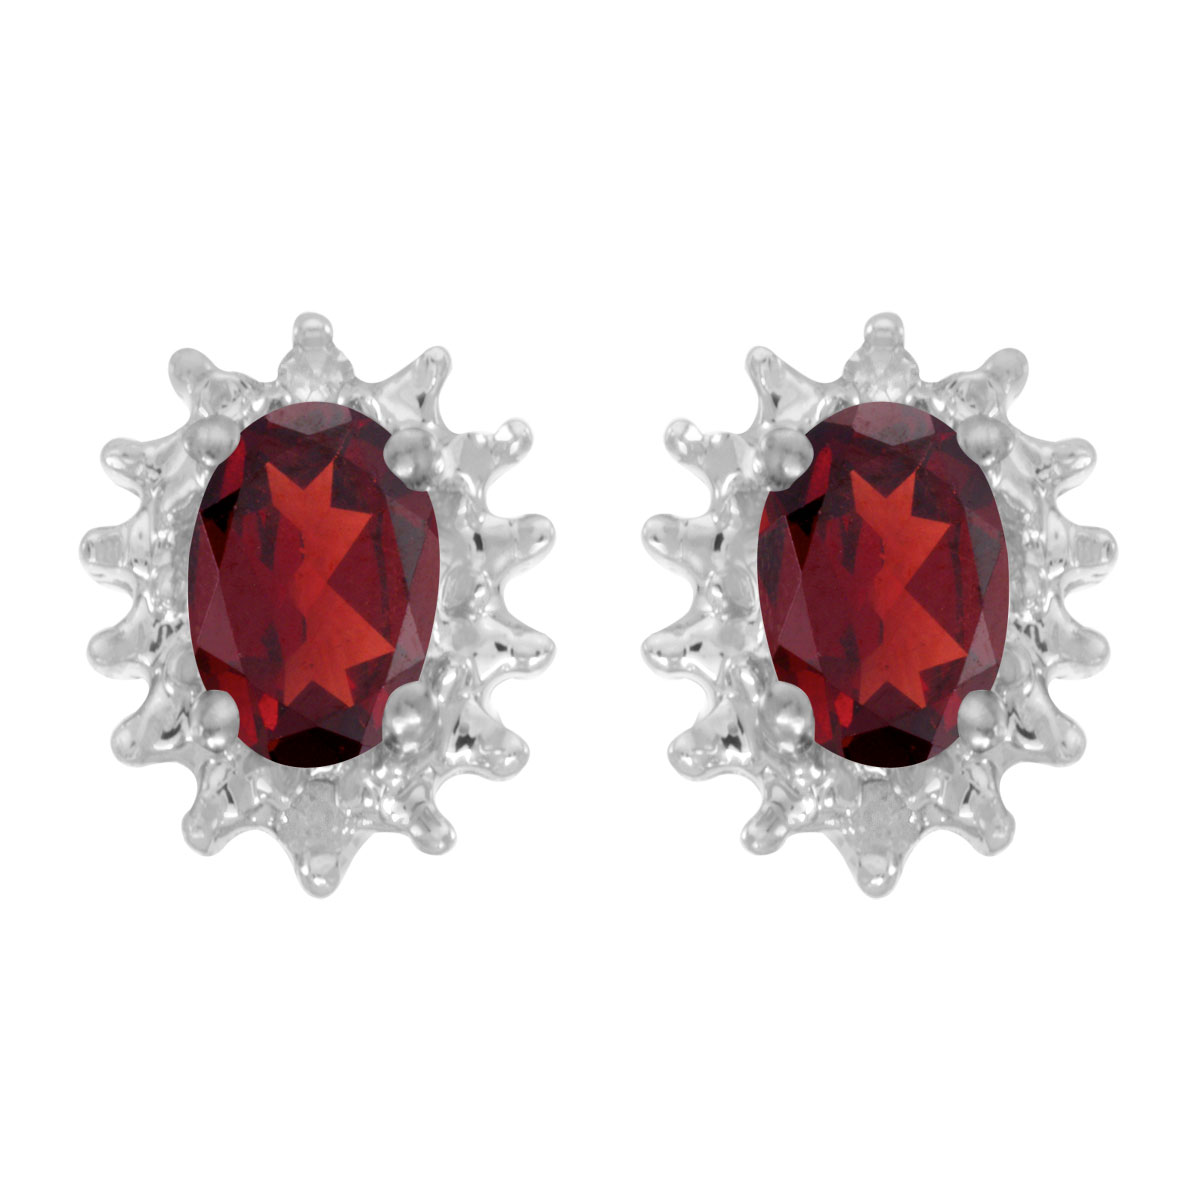 These 14k white gold oval garnet and diamond earrings feature 6x4 mm genuine natural garnets with a 0.94 ct total weight and .04 ct diamonds.